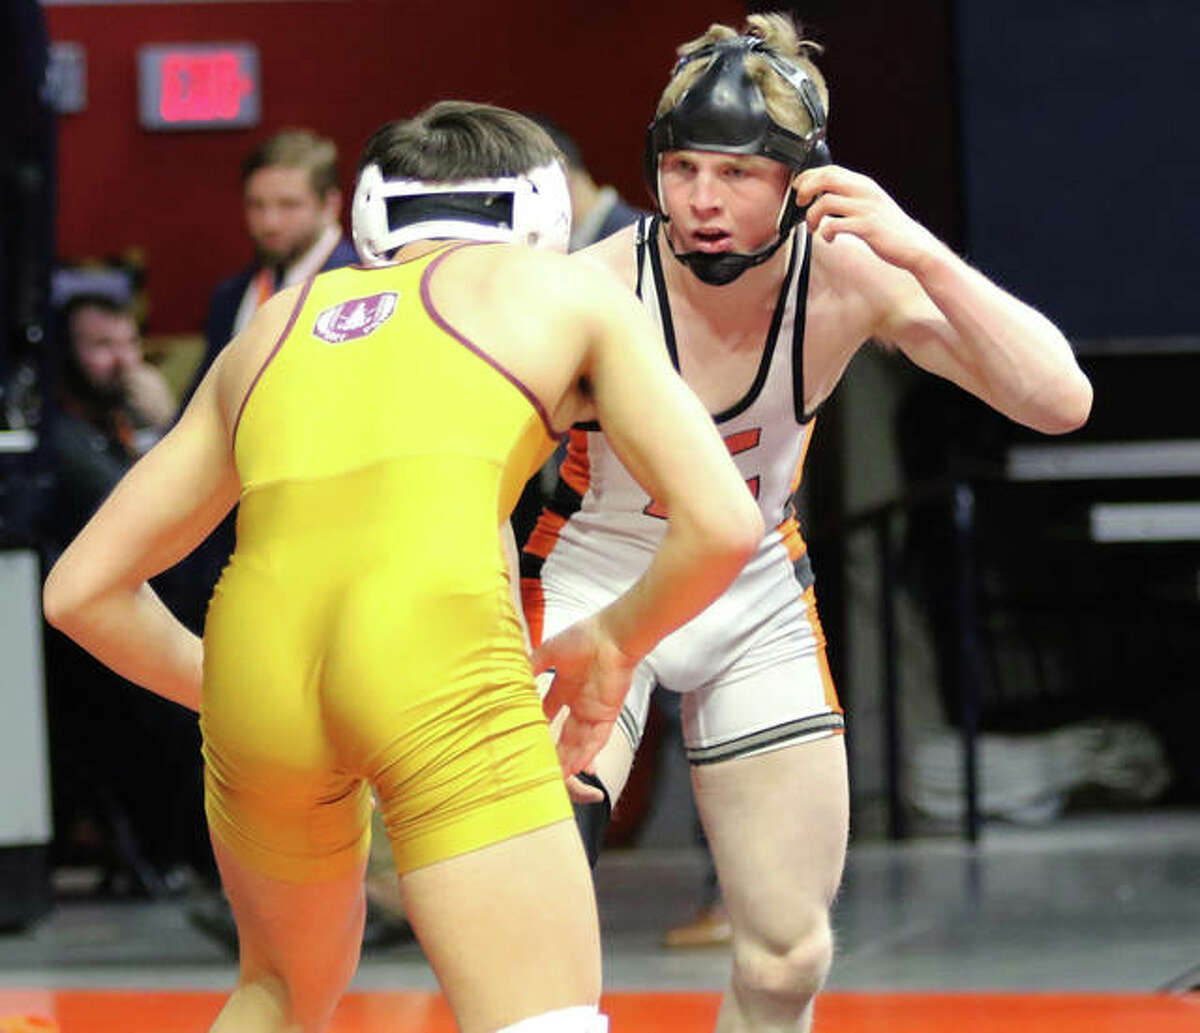 Edwardsville's Noah Surtin (right) and Lockport's Matt Ramos wrestle in the Class 3A state championship match at 120 pounds in February at State Farm Center in Champaign.